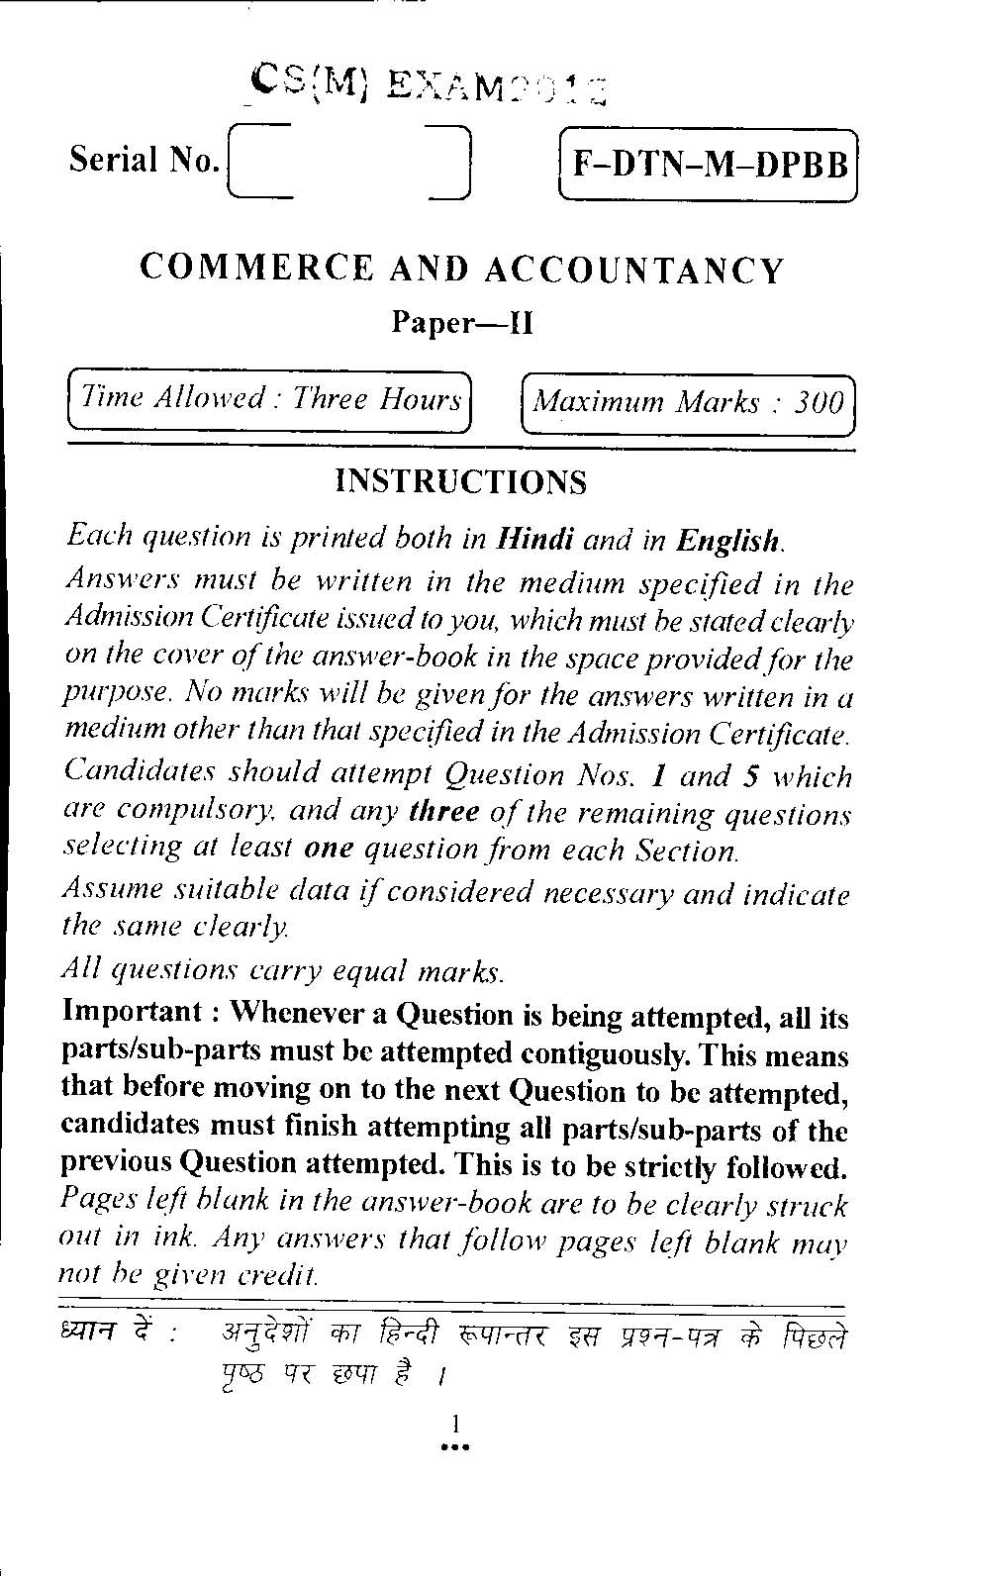 014 What Is An American Essay Example Civil Services Examination Commerce And Accountancy Paper Ii Previous Years Que Stupendous Thesis Your Dream Ideas Full